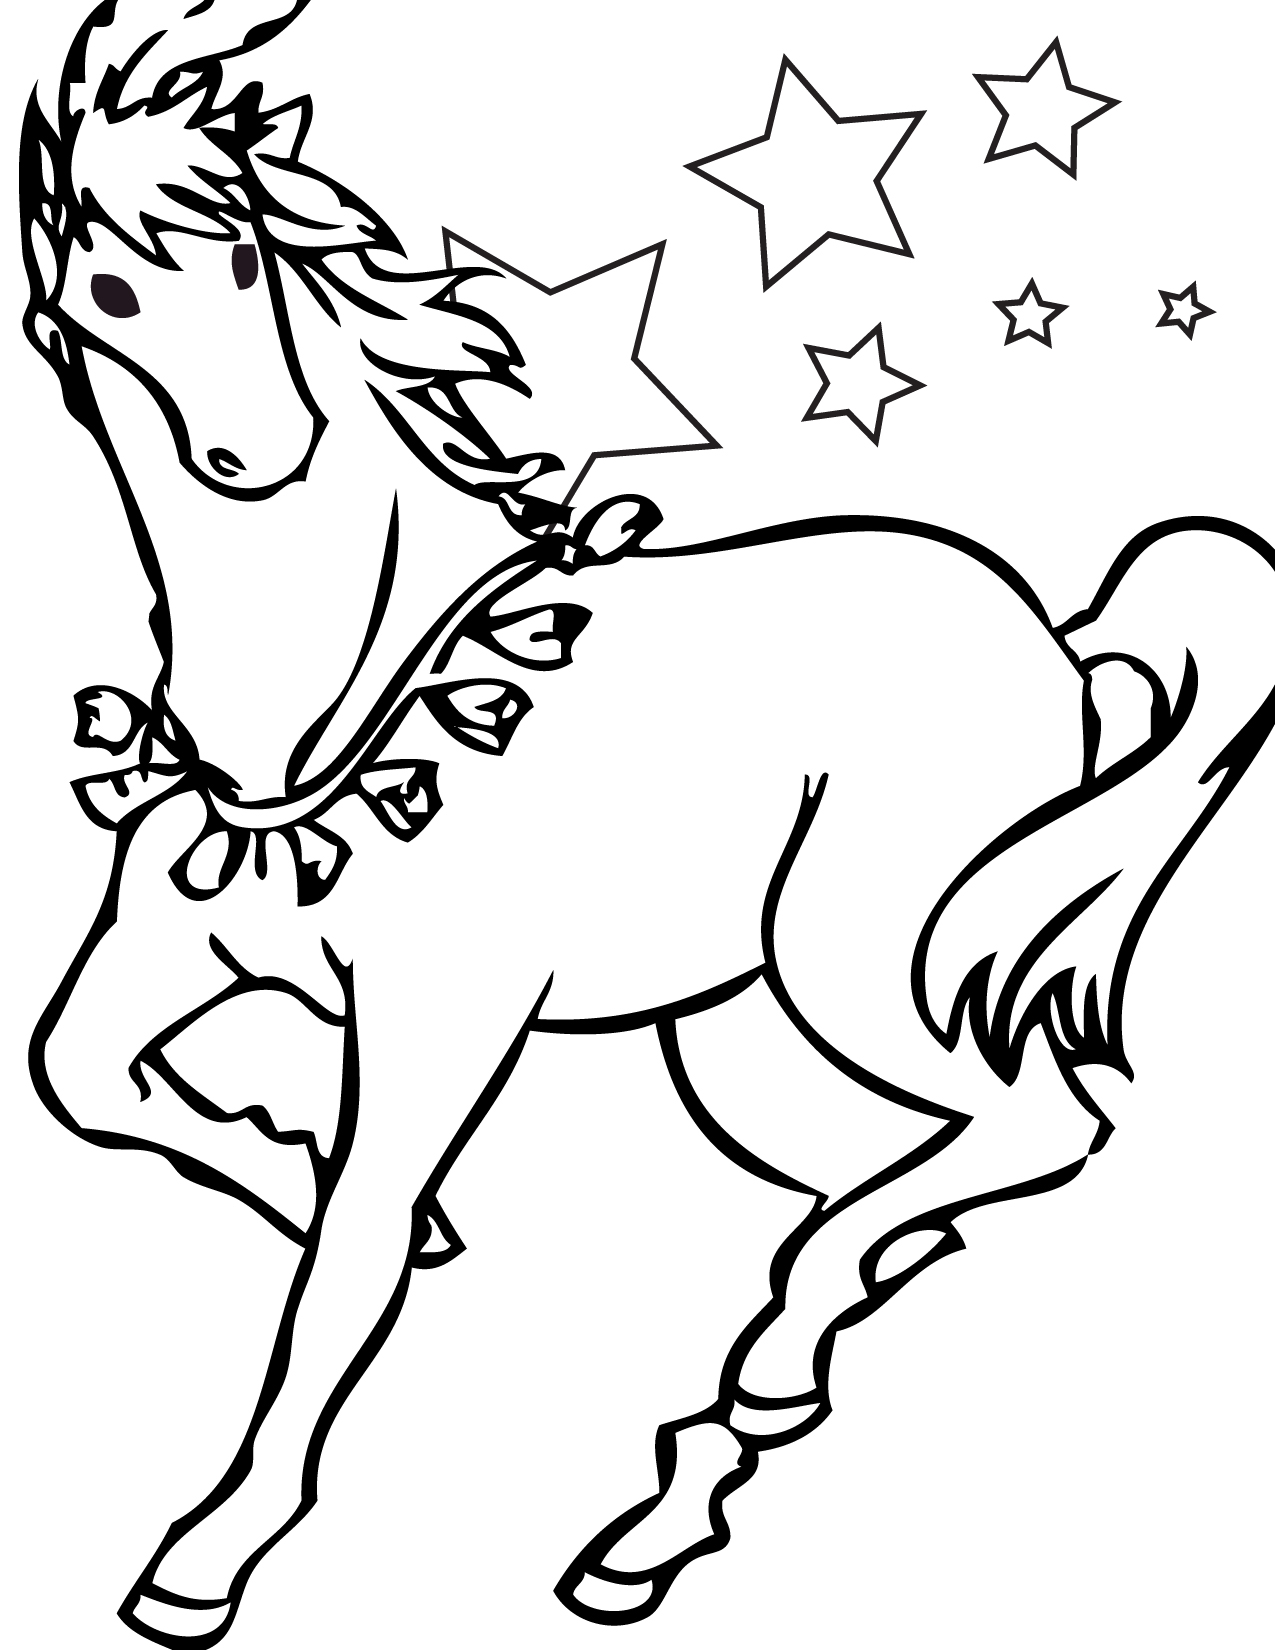 coloring picture of horse horse coloring pages preschool and kindergarten of picture coloring horse